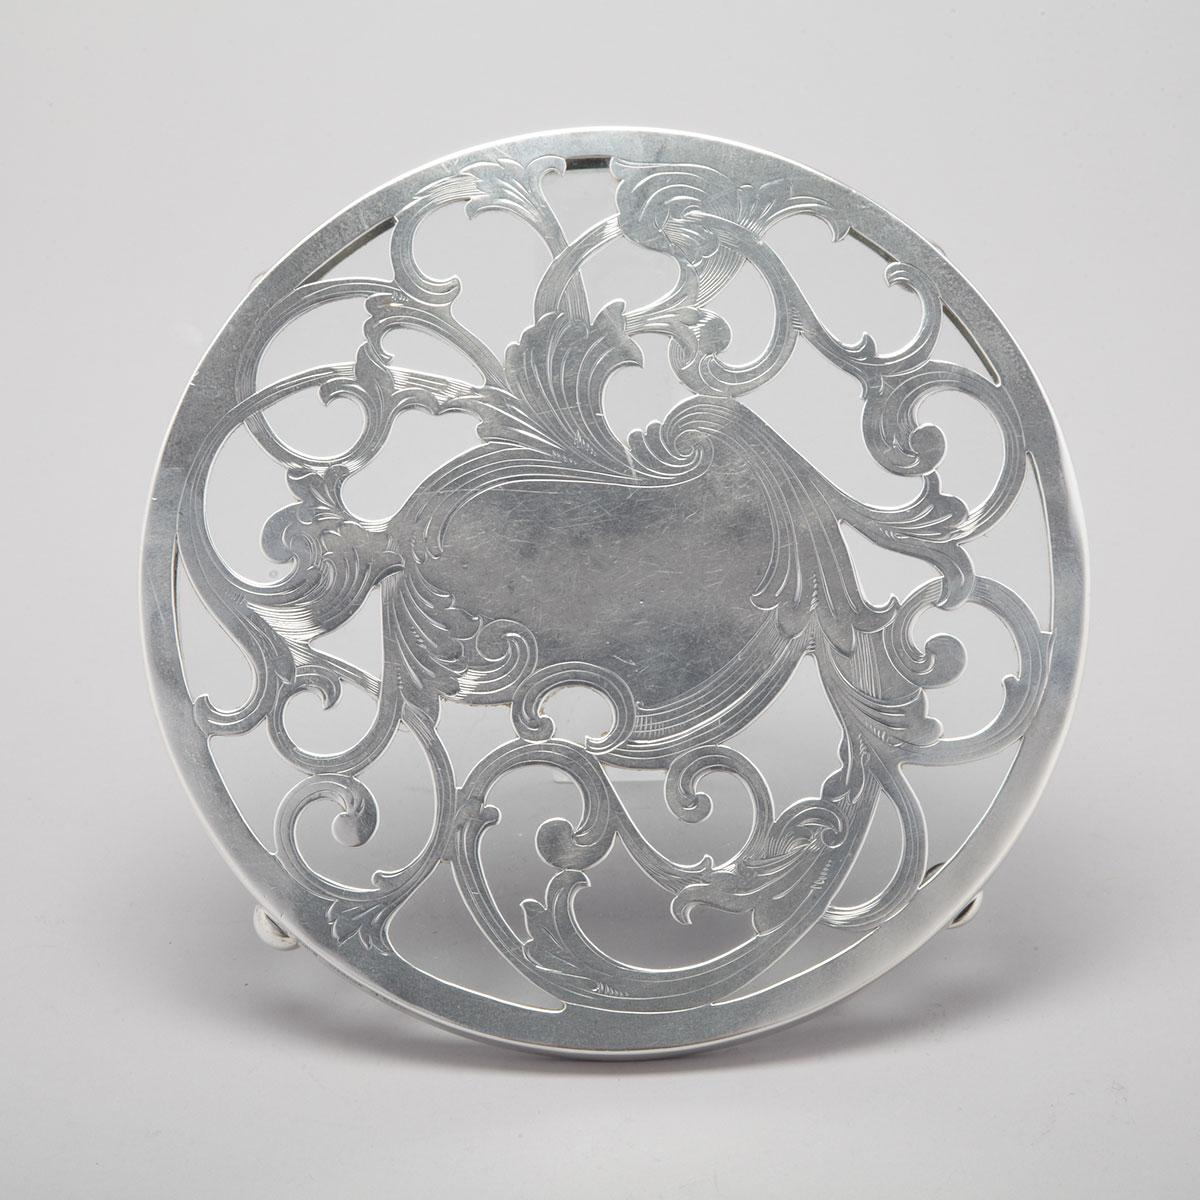 American Silver Mounted Glass Circular Trivet, Reed & Barton, Taunton, Mass., early 20th century